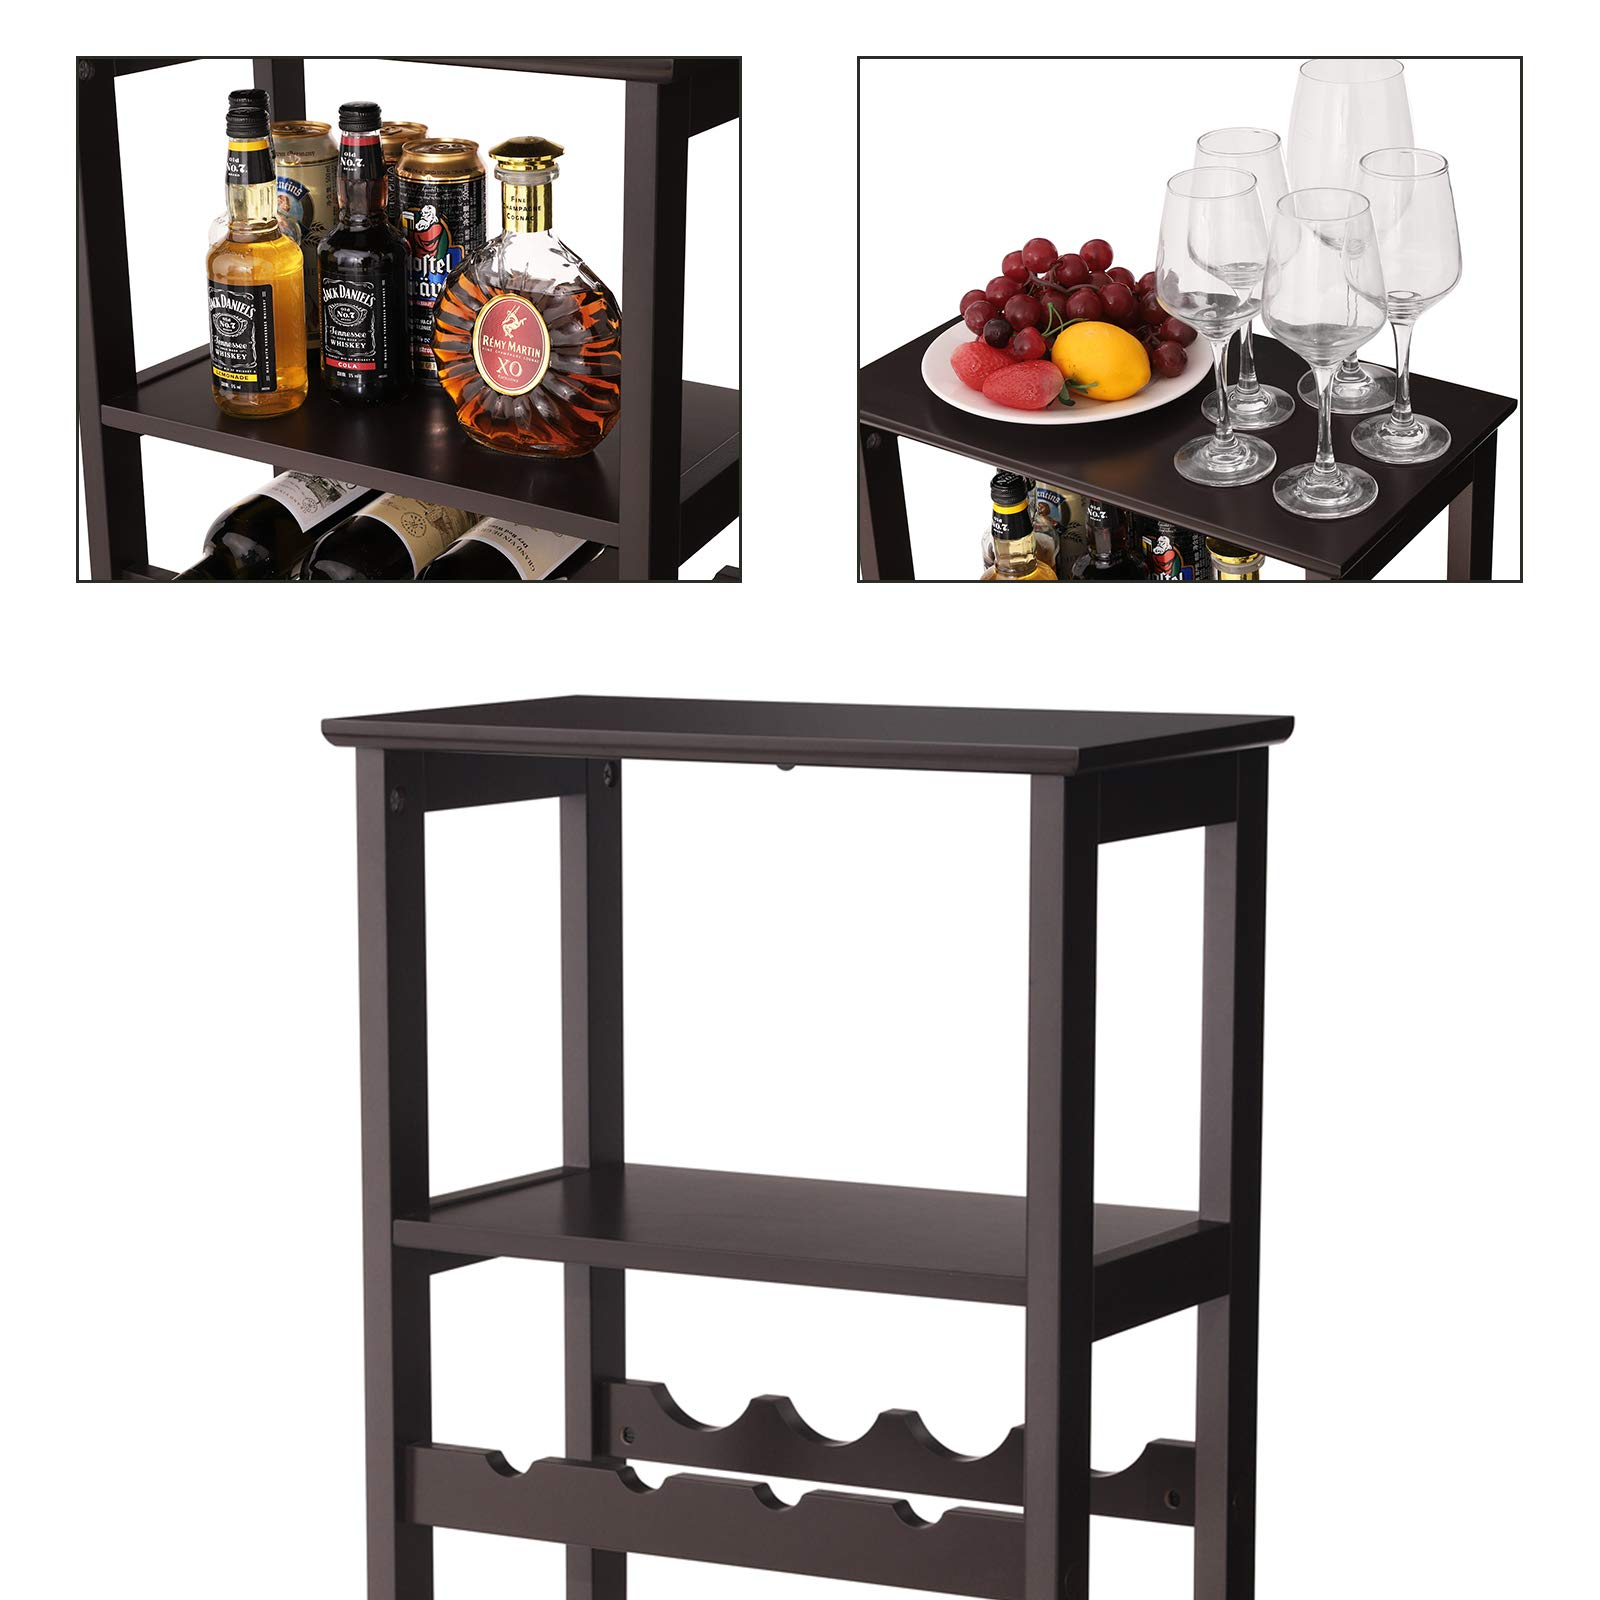 VASAGLE 20 Wooden Wine Rack, Free Standing Bottles Display Storage Shelf, with 2 Slatted Shelves,18.4''L × 10.4''W × 42.9''H, Espresso ULWR03BR by VASAGLE (Image #4)